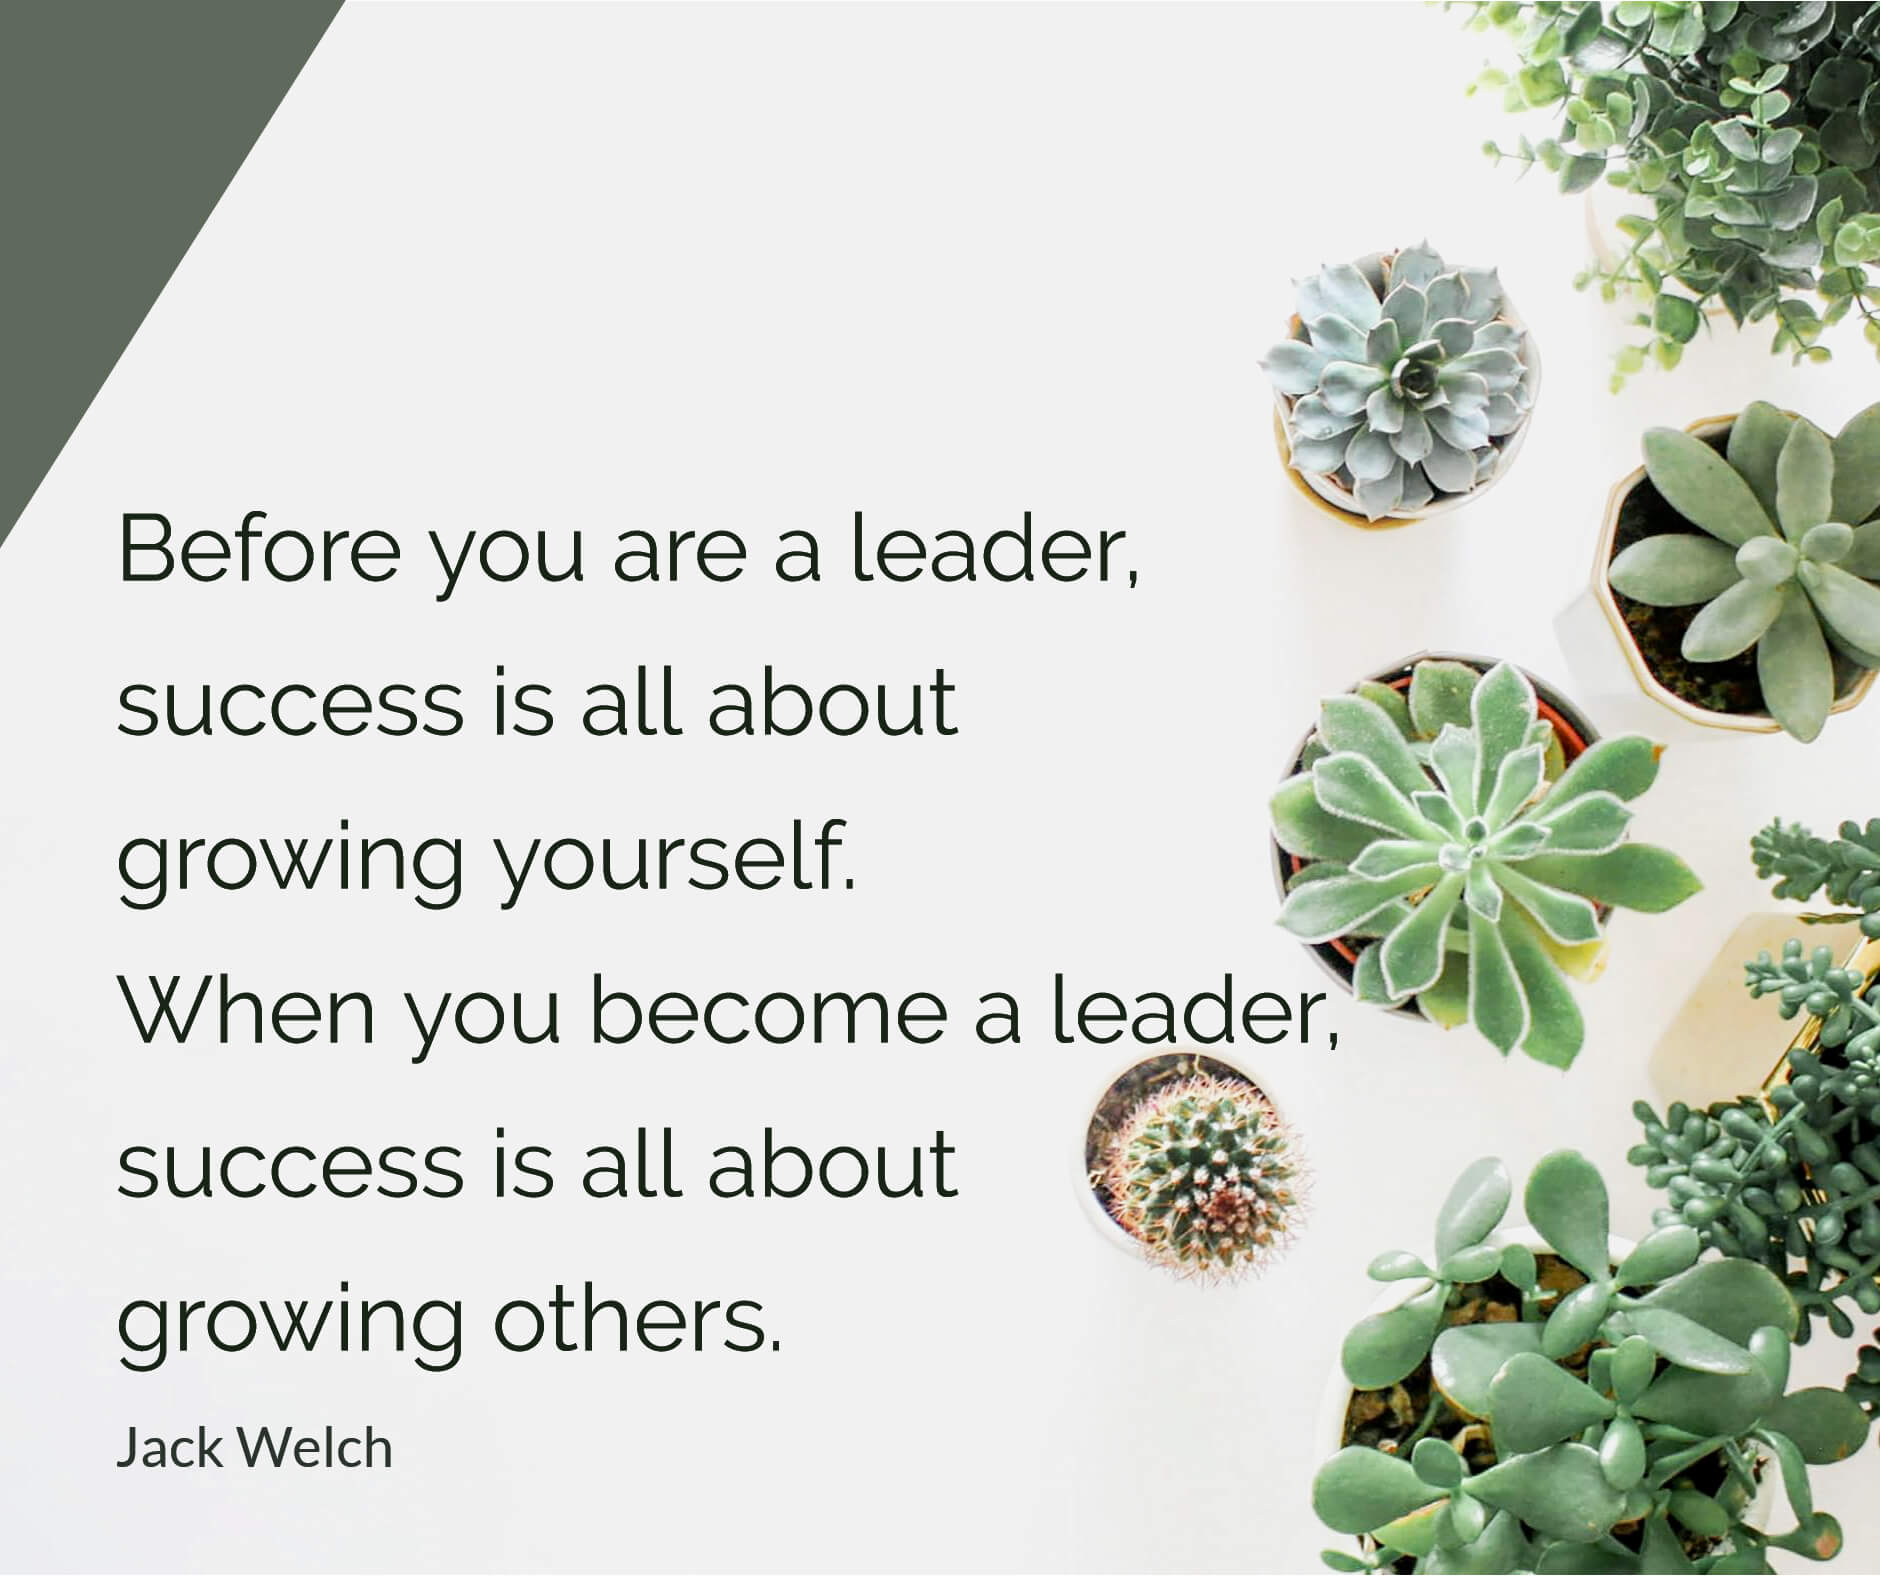 Before you are a leader, success is about growing yourself.